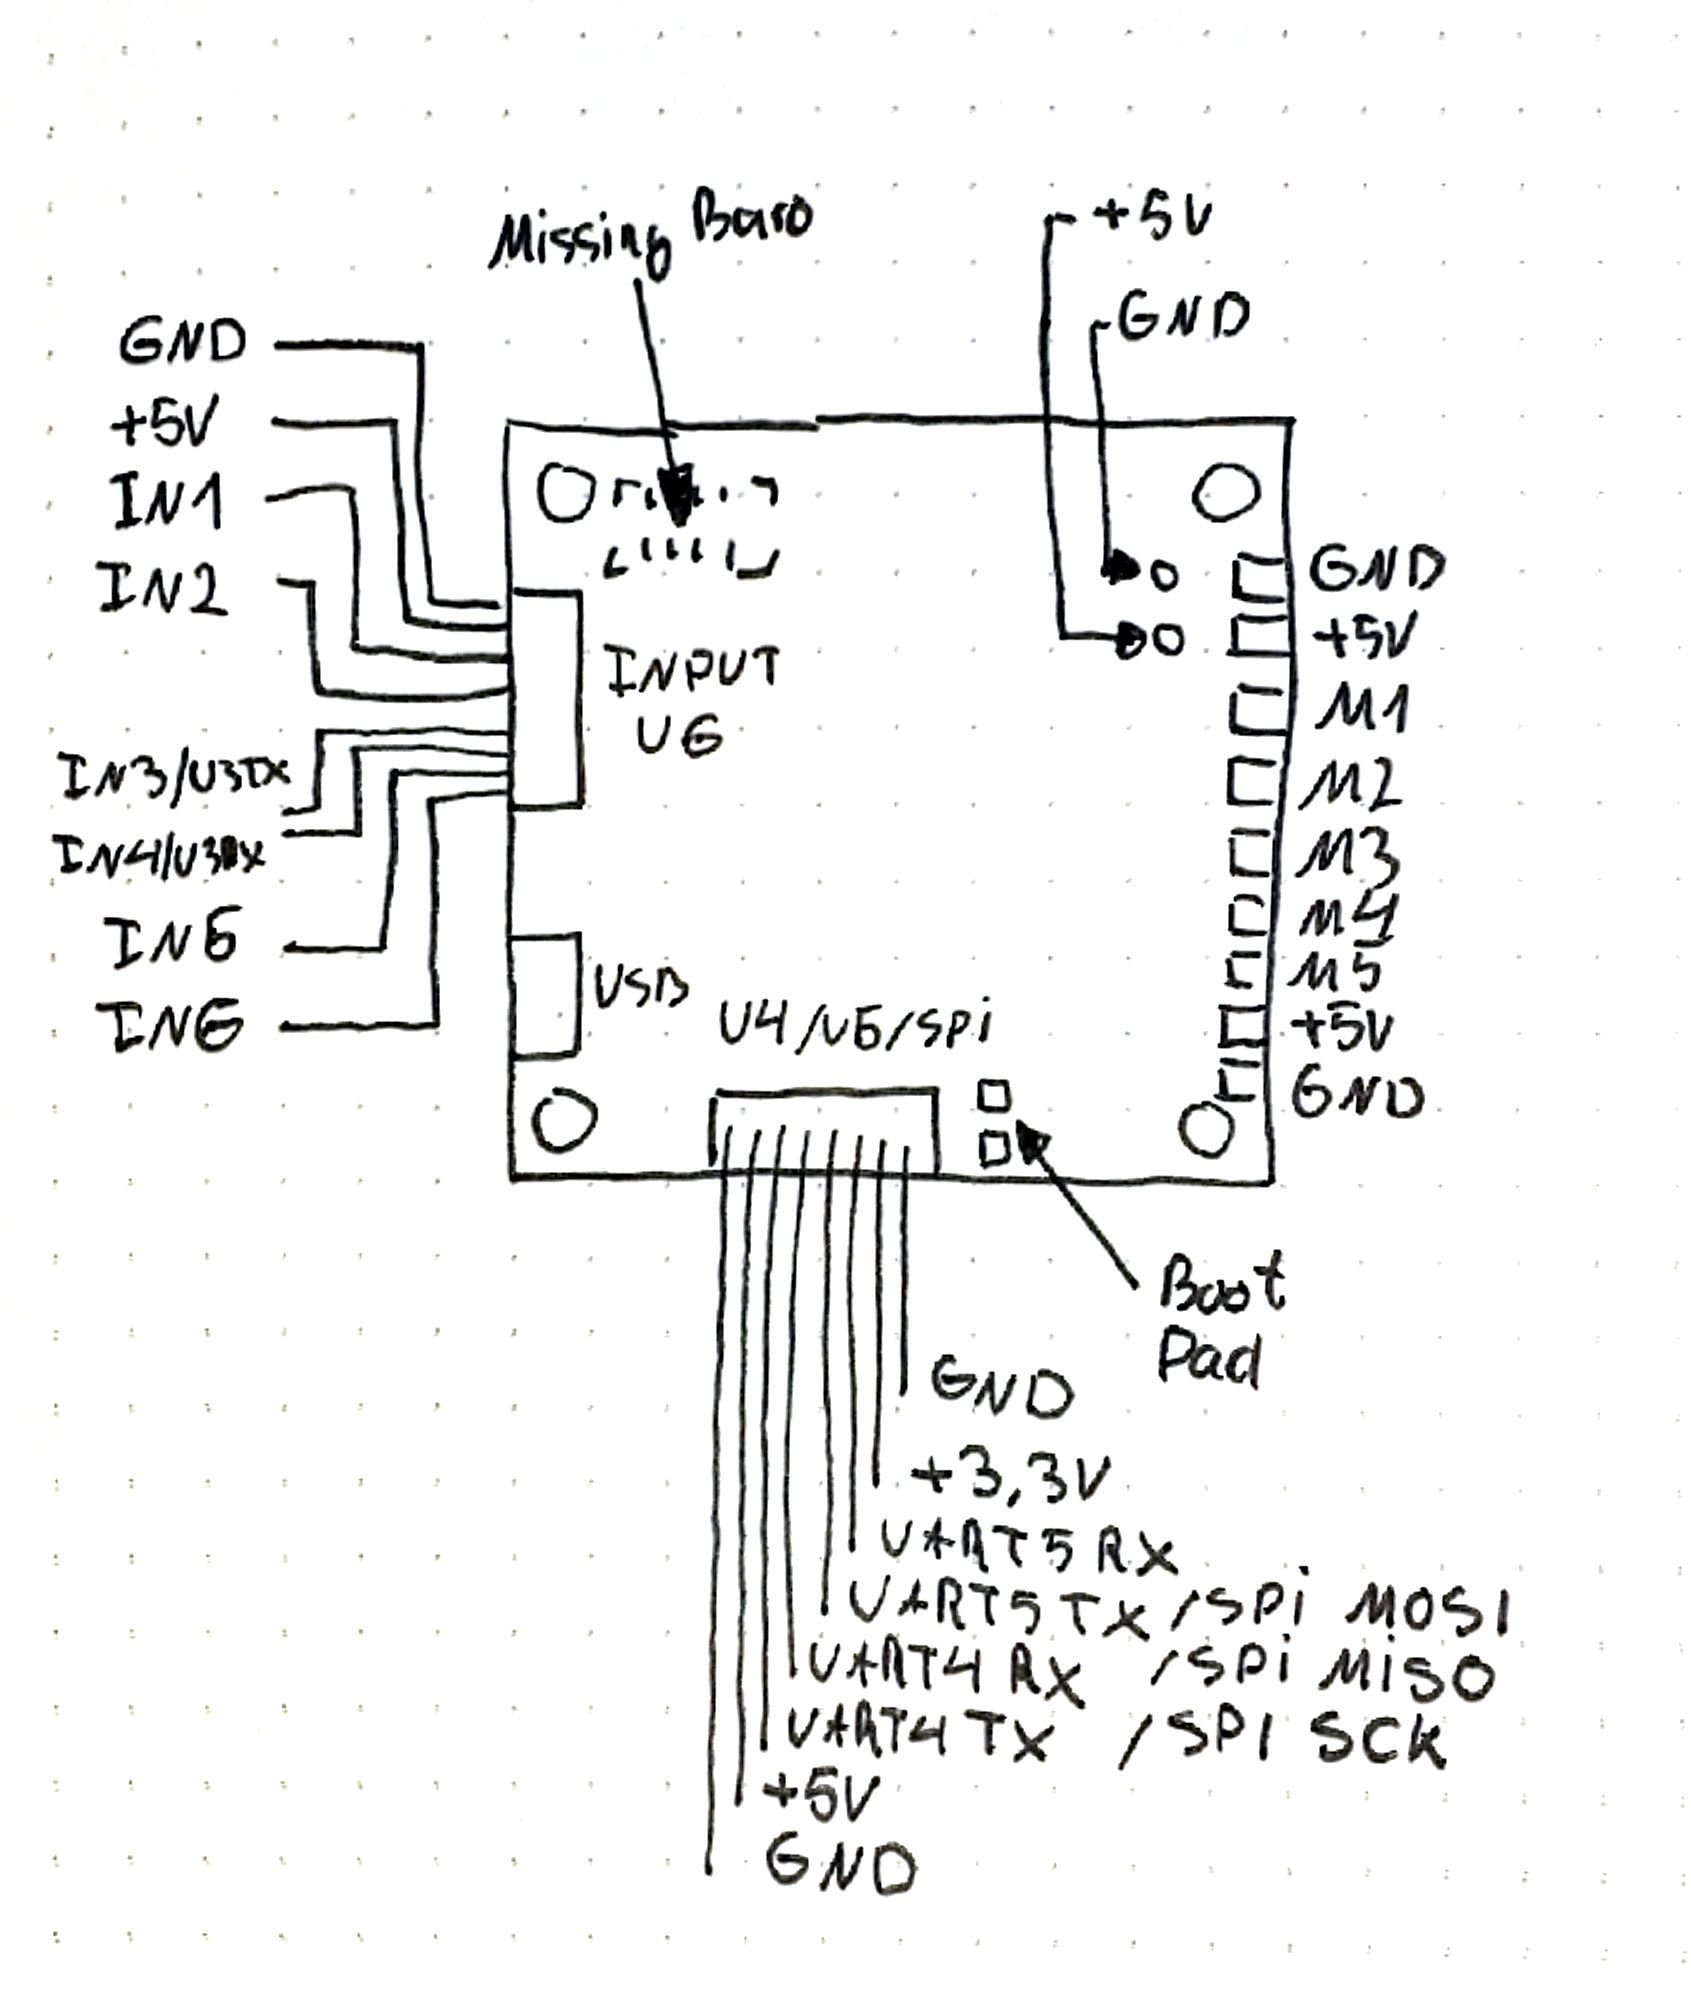 medium resolution of pin by felix vatamanu on drones in 2018 pinterest diagram wire